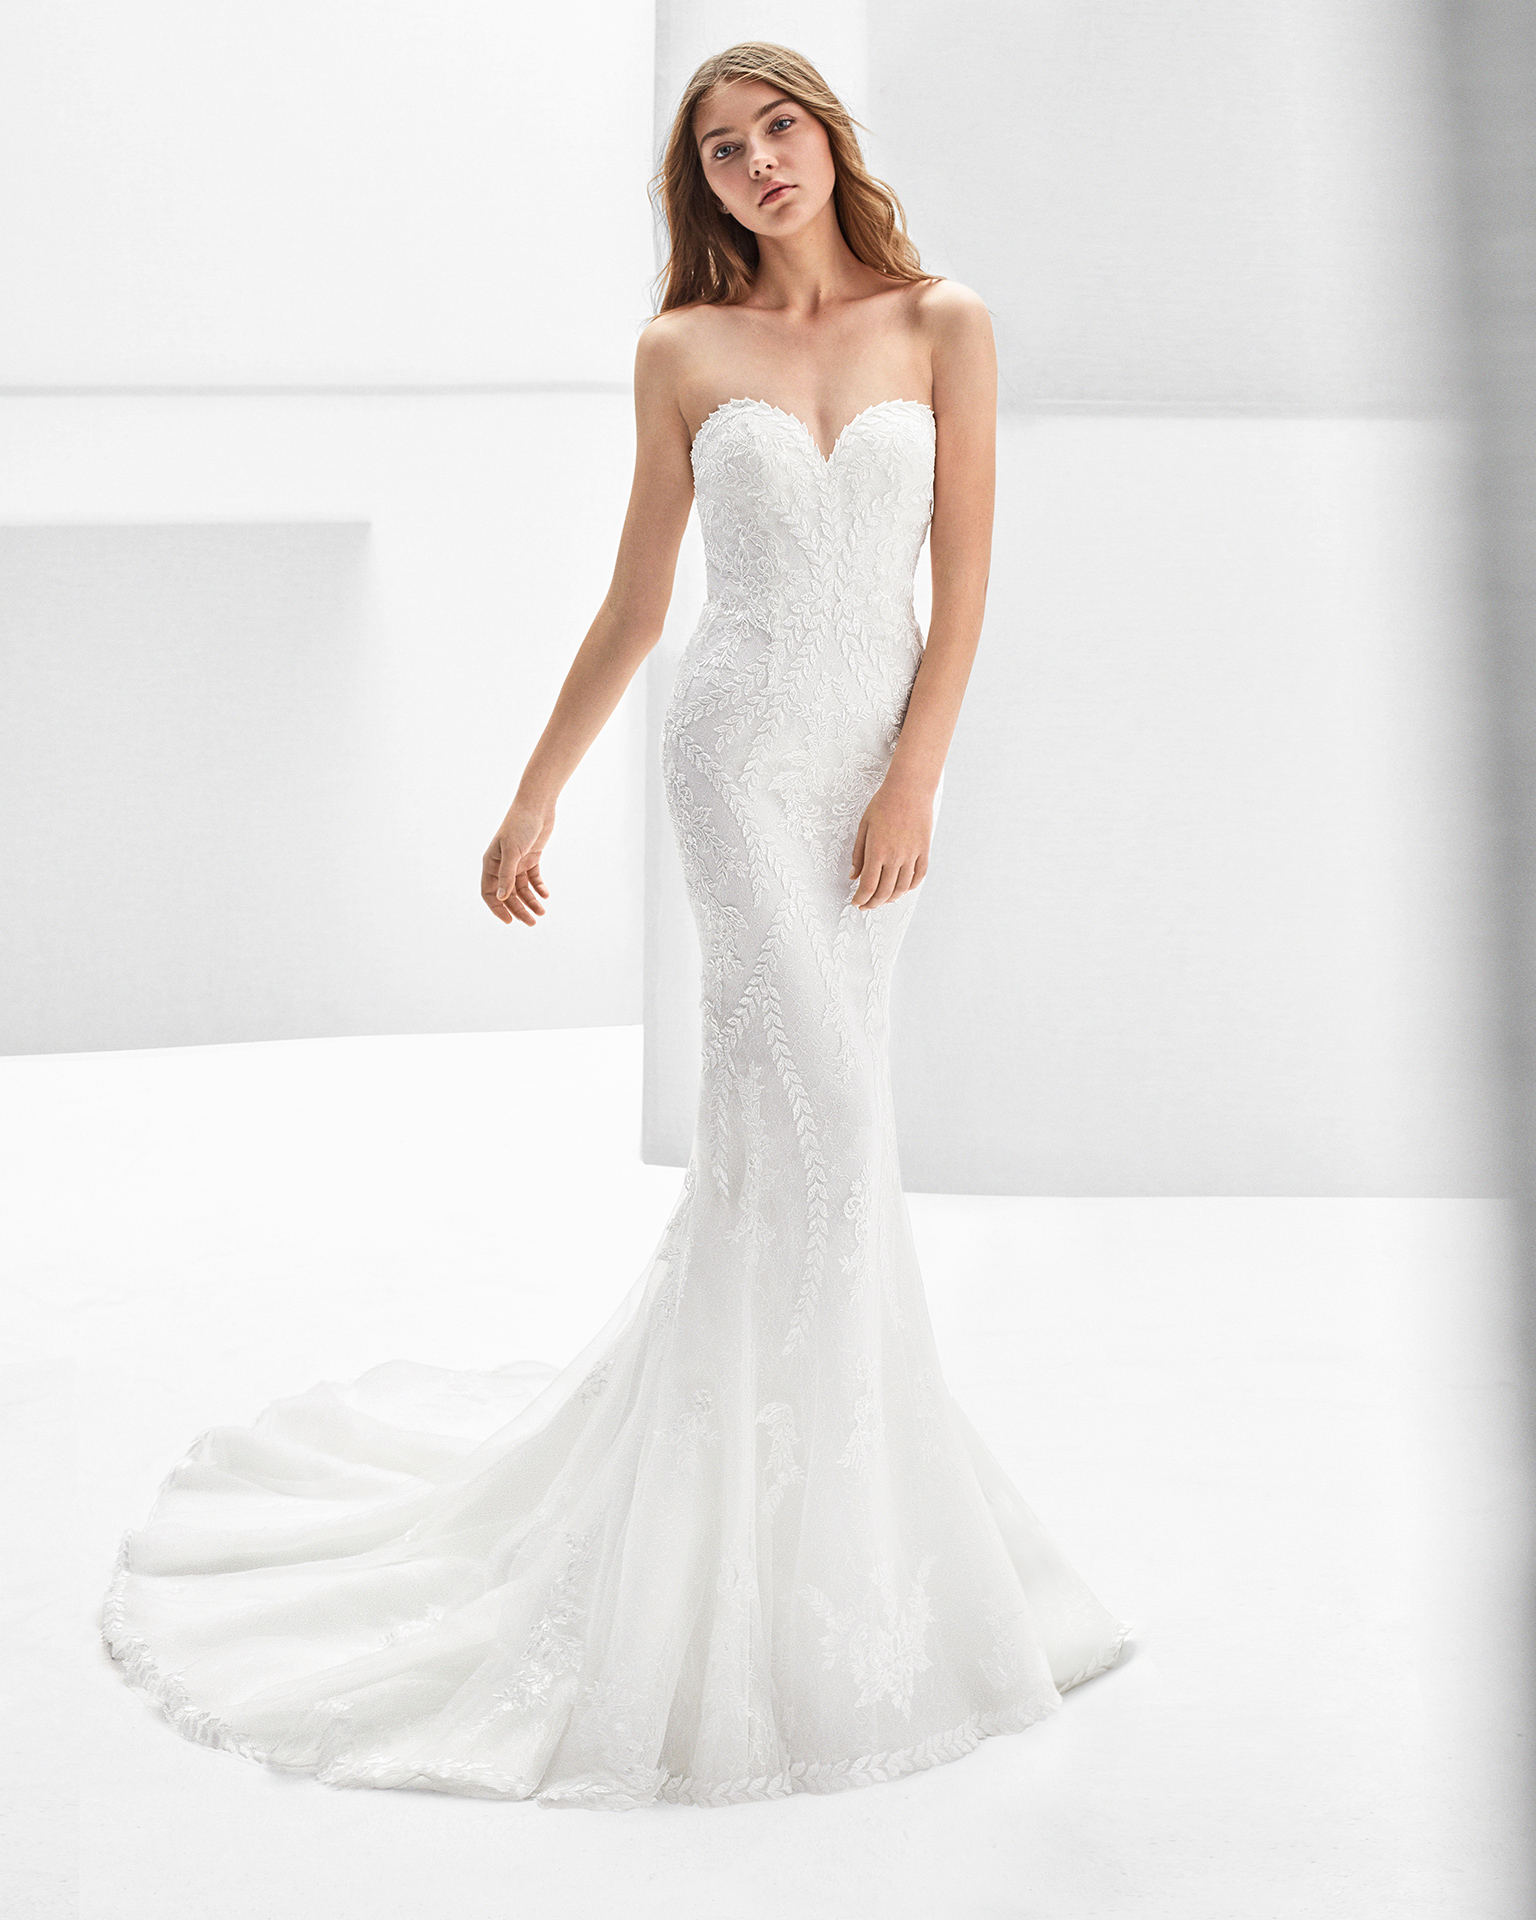 Mermaid-style beaded guipure lace wedding dress with sweetheart neckline and low back.